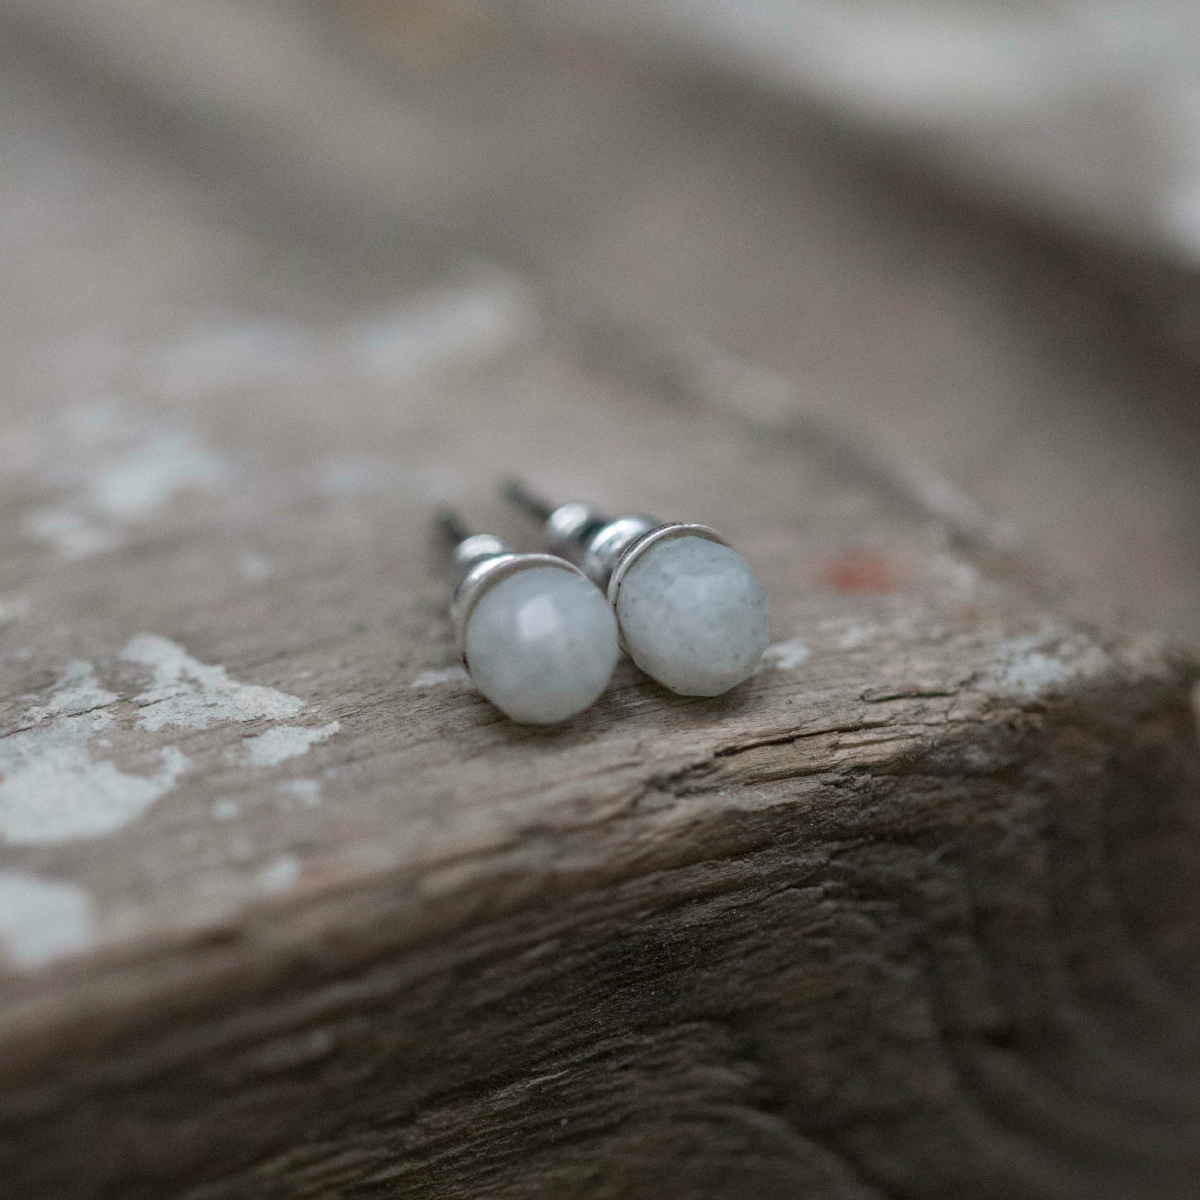 Tutti & Co Grey Faceted Stone Stud Earrings available at Birdhouse Jewellery